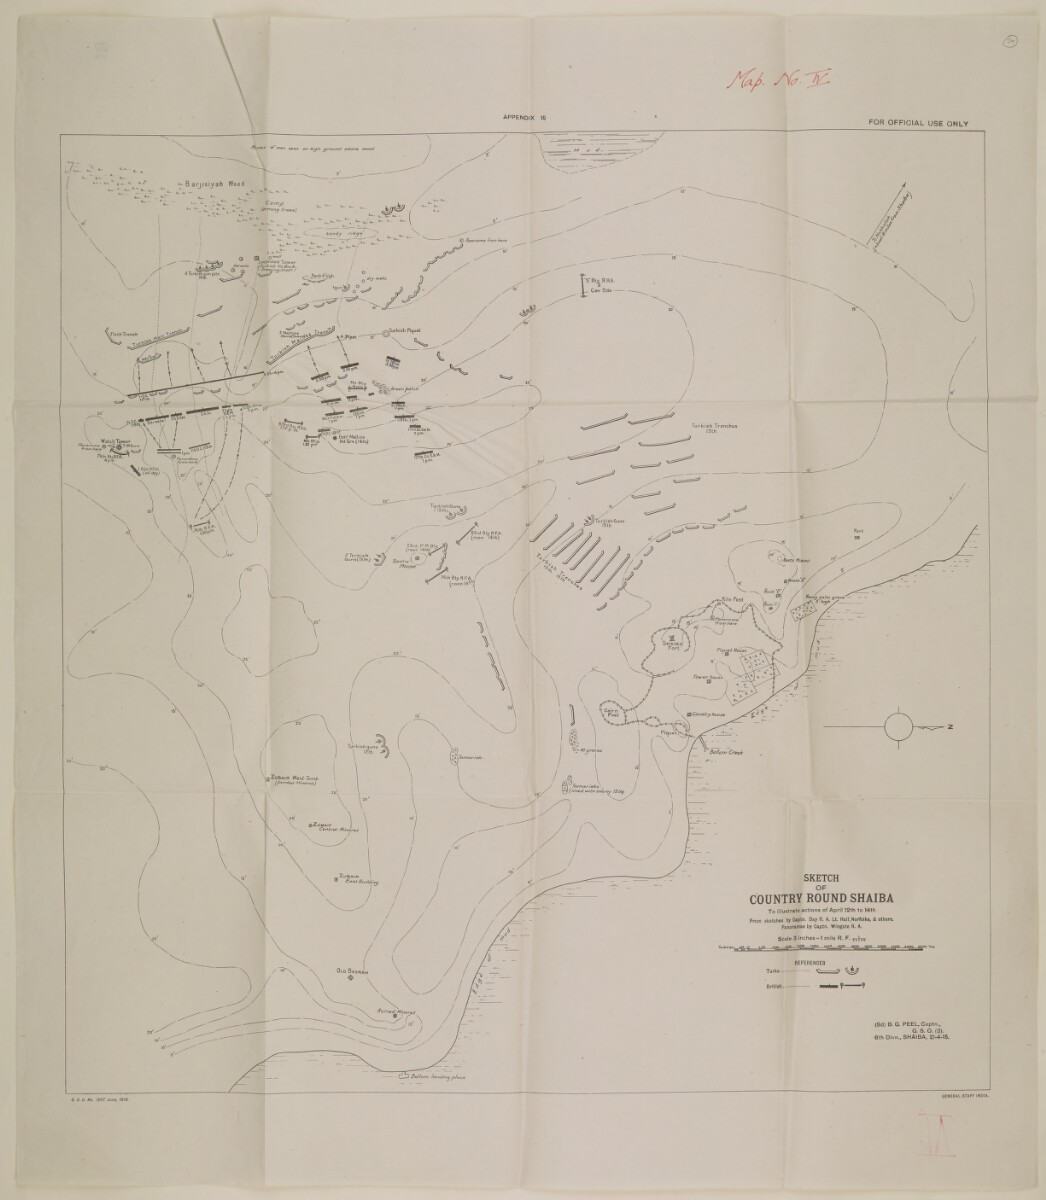 'Sketch of Country Round Shaiba To Illustrate Actions of April 12th to 14th From Sketches by Captain Day R.A. Lieutenants Hall, Norfolks, & others. Panoramas by Captain Wingate R.A.' [‎48] (1/1)